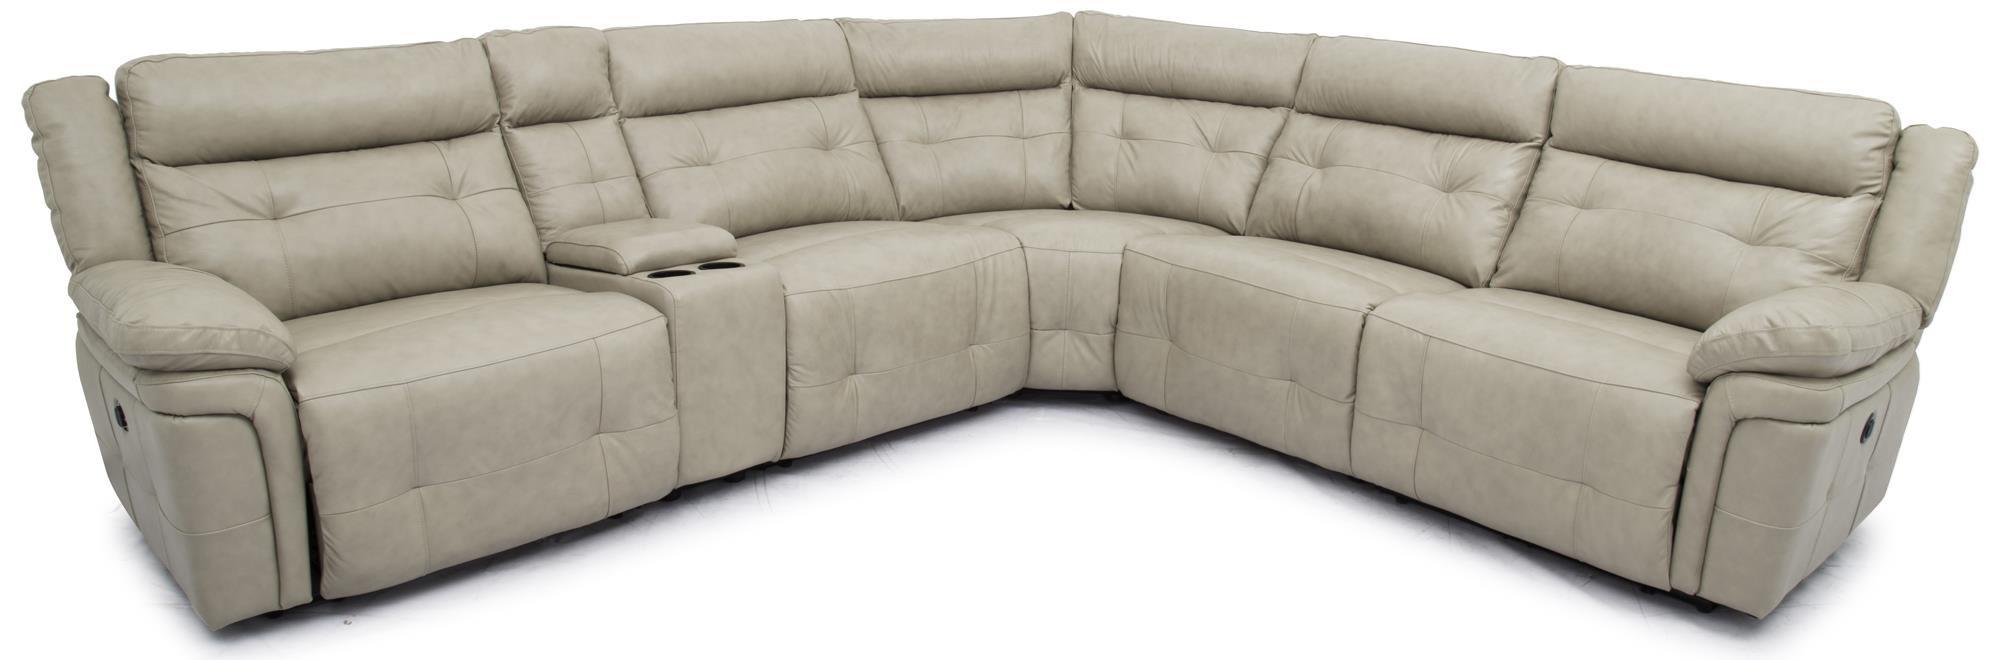 Top Grain Leather Match Reclining Sectional